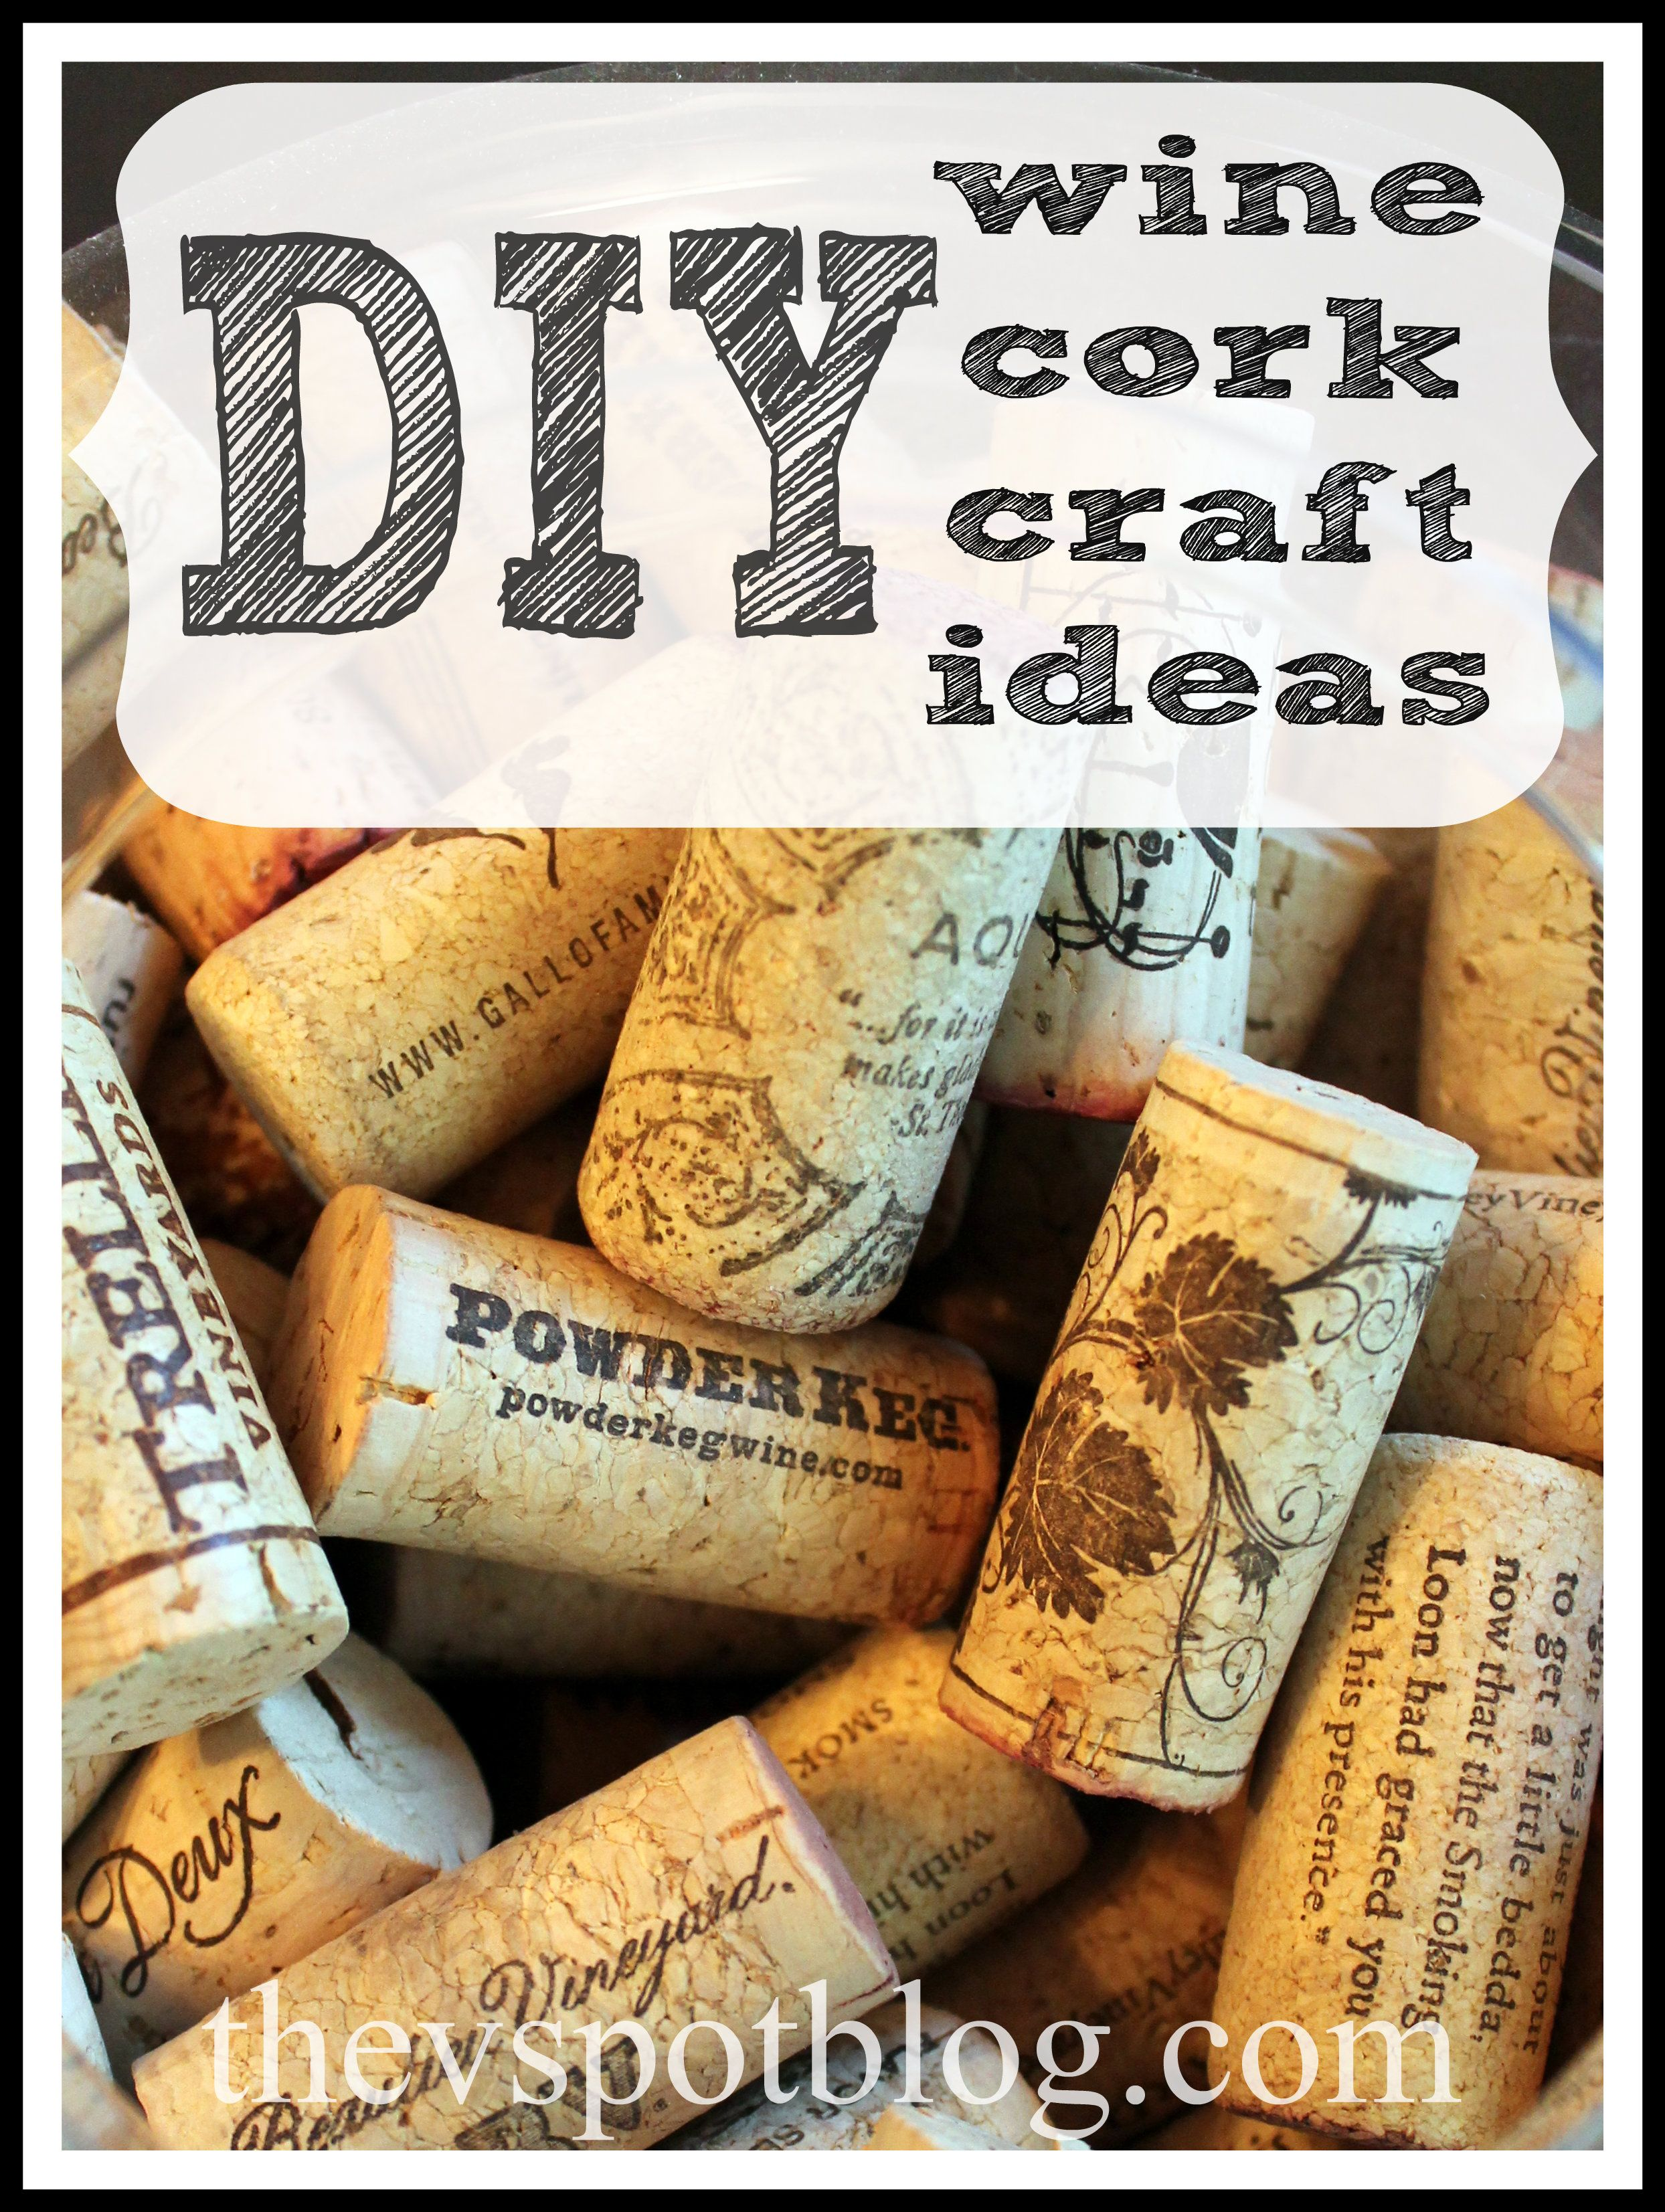 Crafts to do with wine corks - Crafts To Do With Wine Corks Wine Cork Craft Ideas Crafts Using Wine Corks Wine